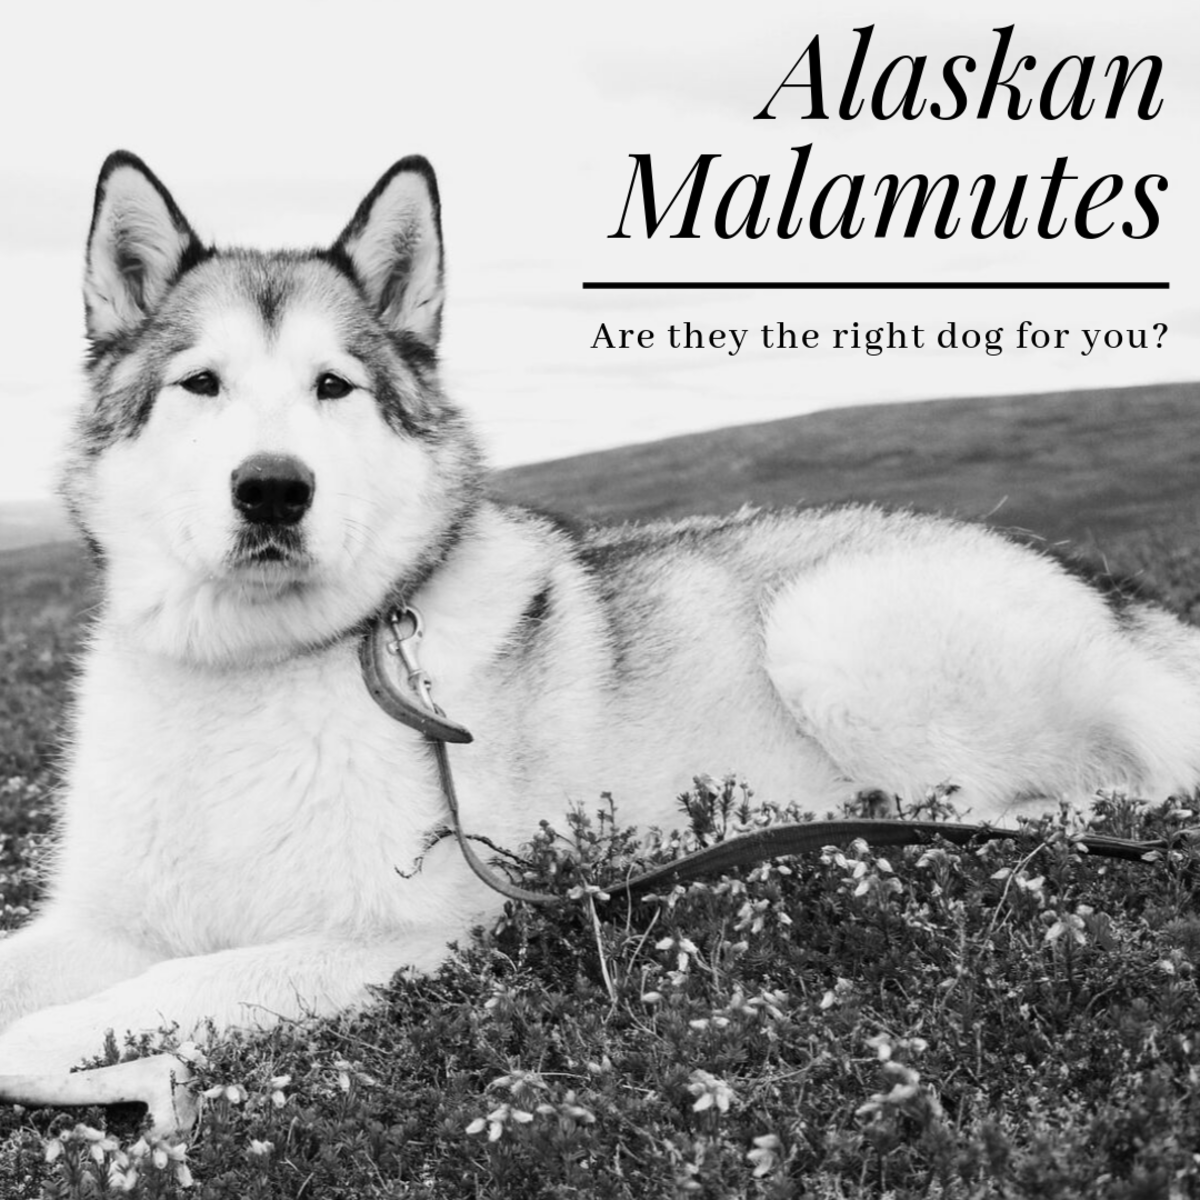 If you've ever wondered if you're up to the daunting task of owning and care for an Alaskan malamute, then this guide is for you.